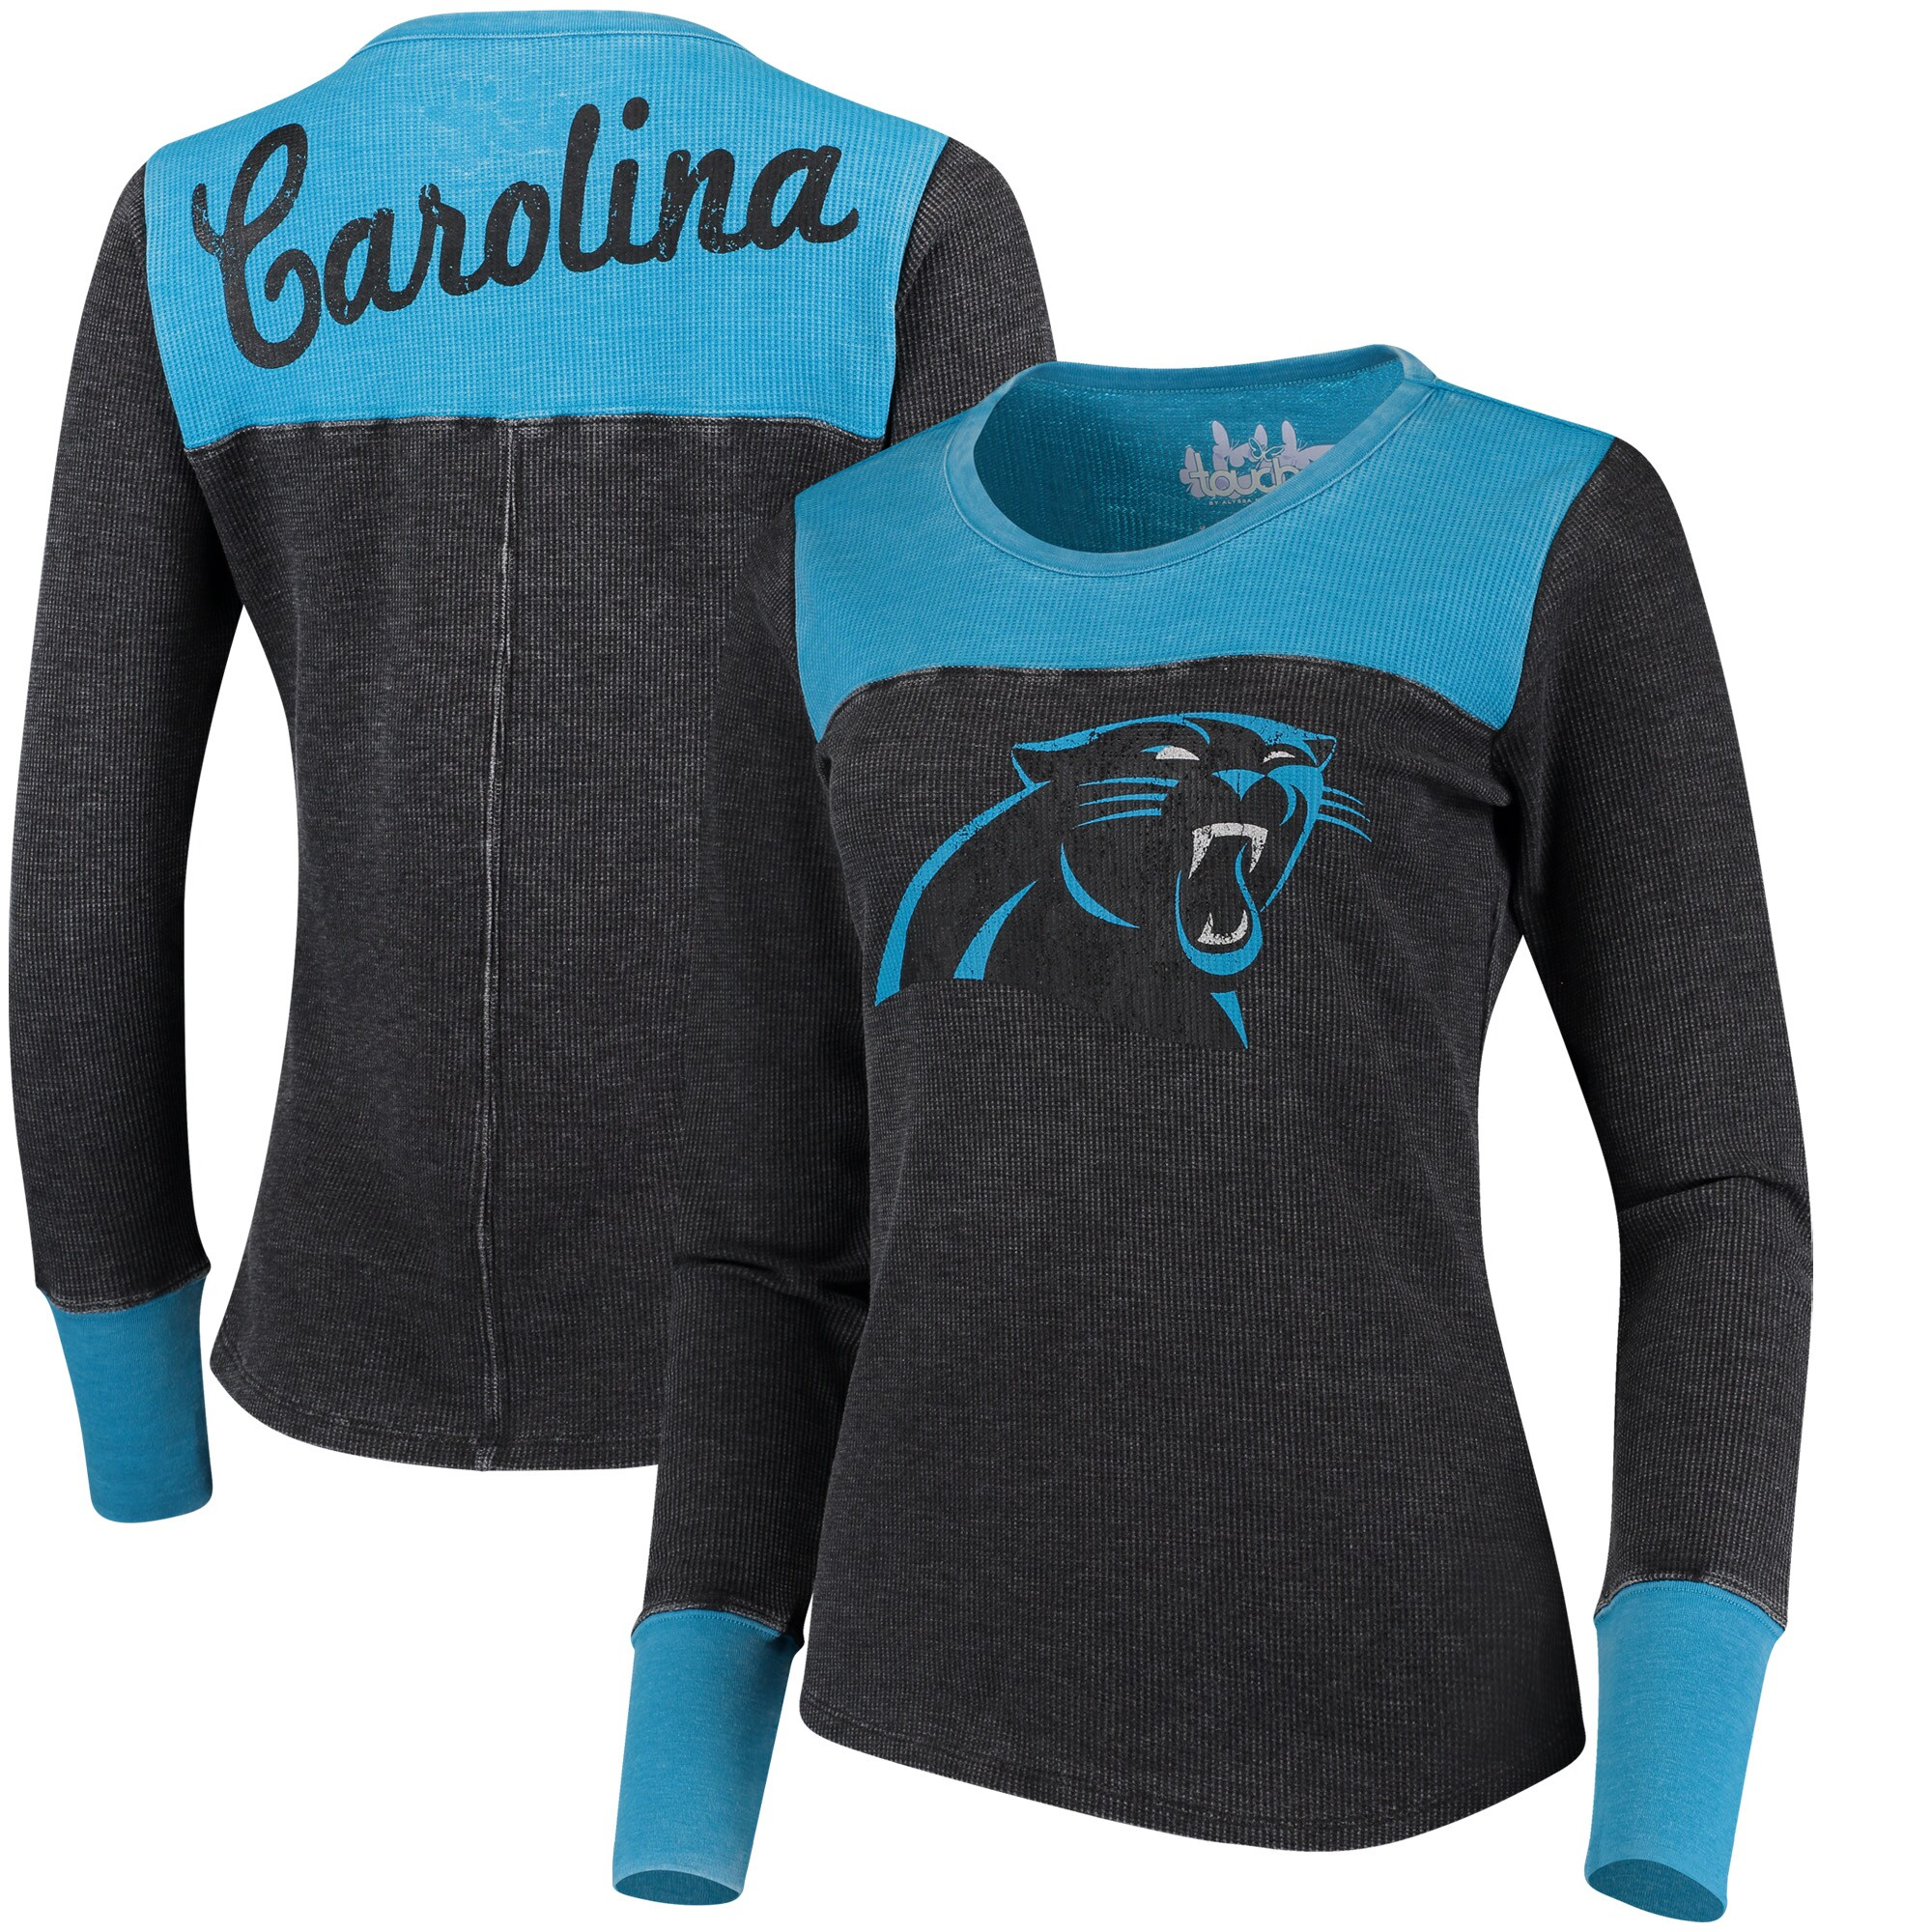 Carolina Panthers Touch by Alyssa Milano Women's Blindside Long Sleeve Tri-Blend Thermal T-Shirt - Black/Blue